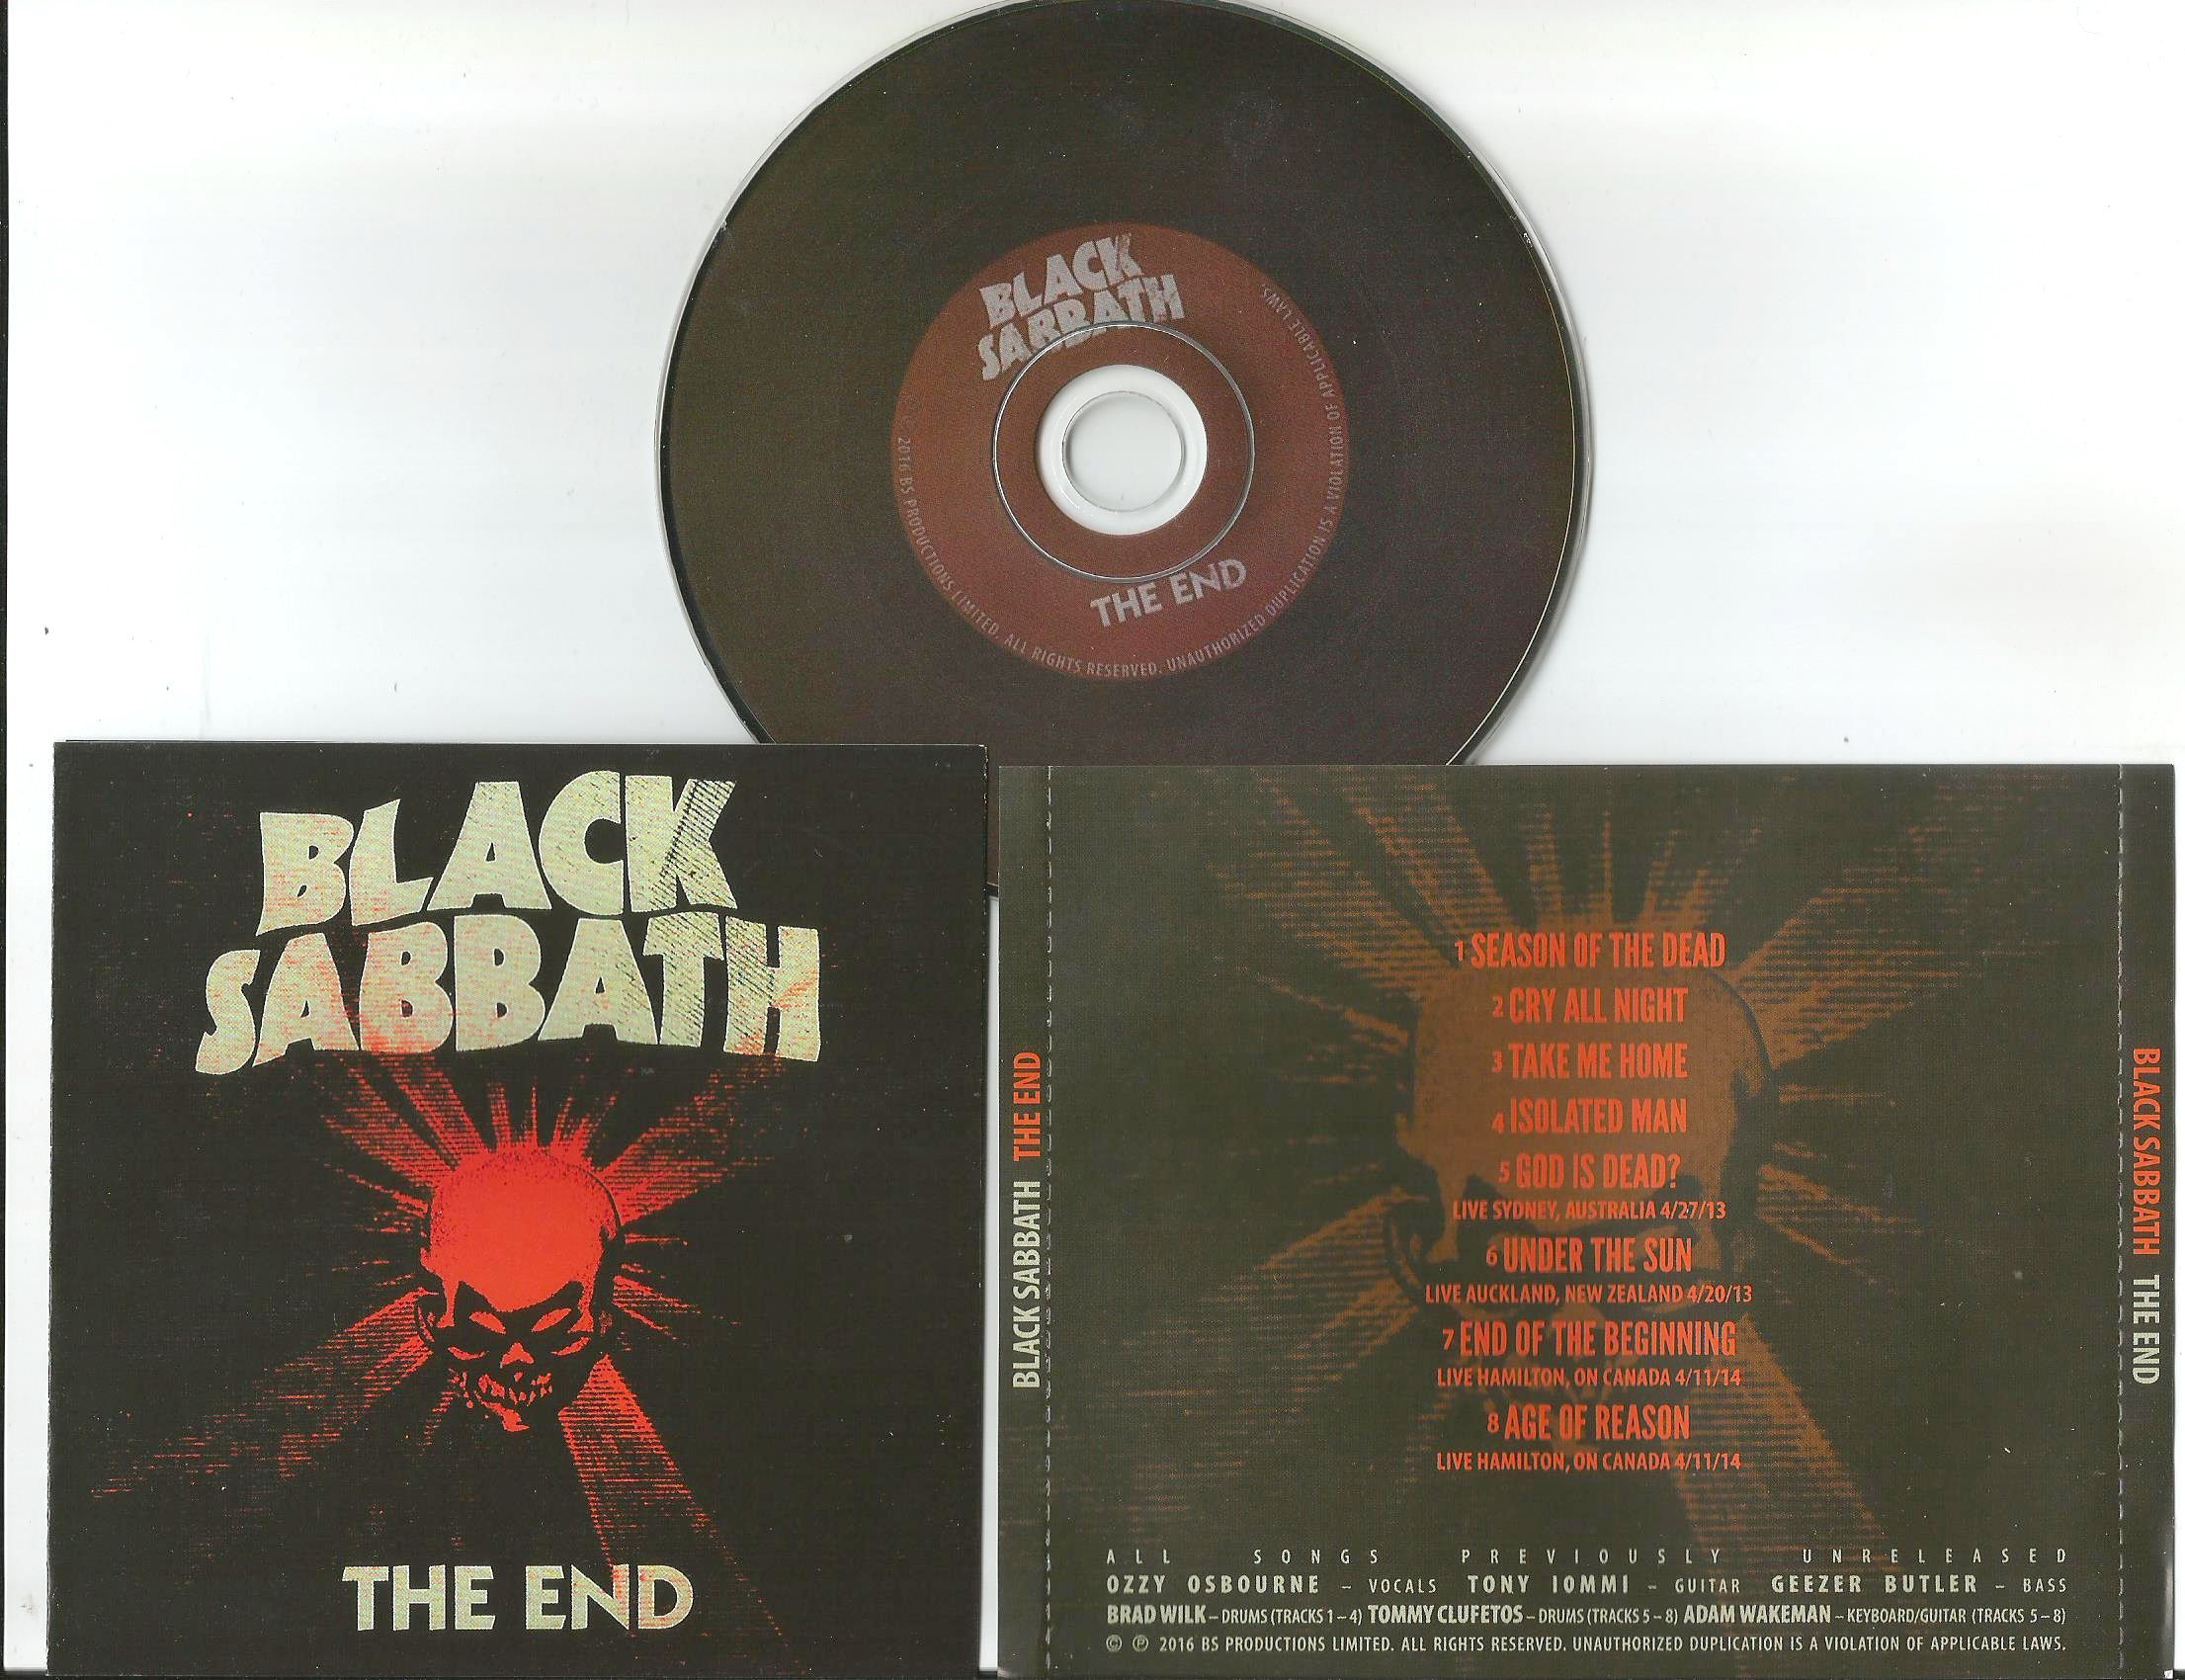 black sabbath the end (3panel booklet with lyrics, brown label disc)